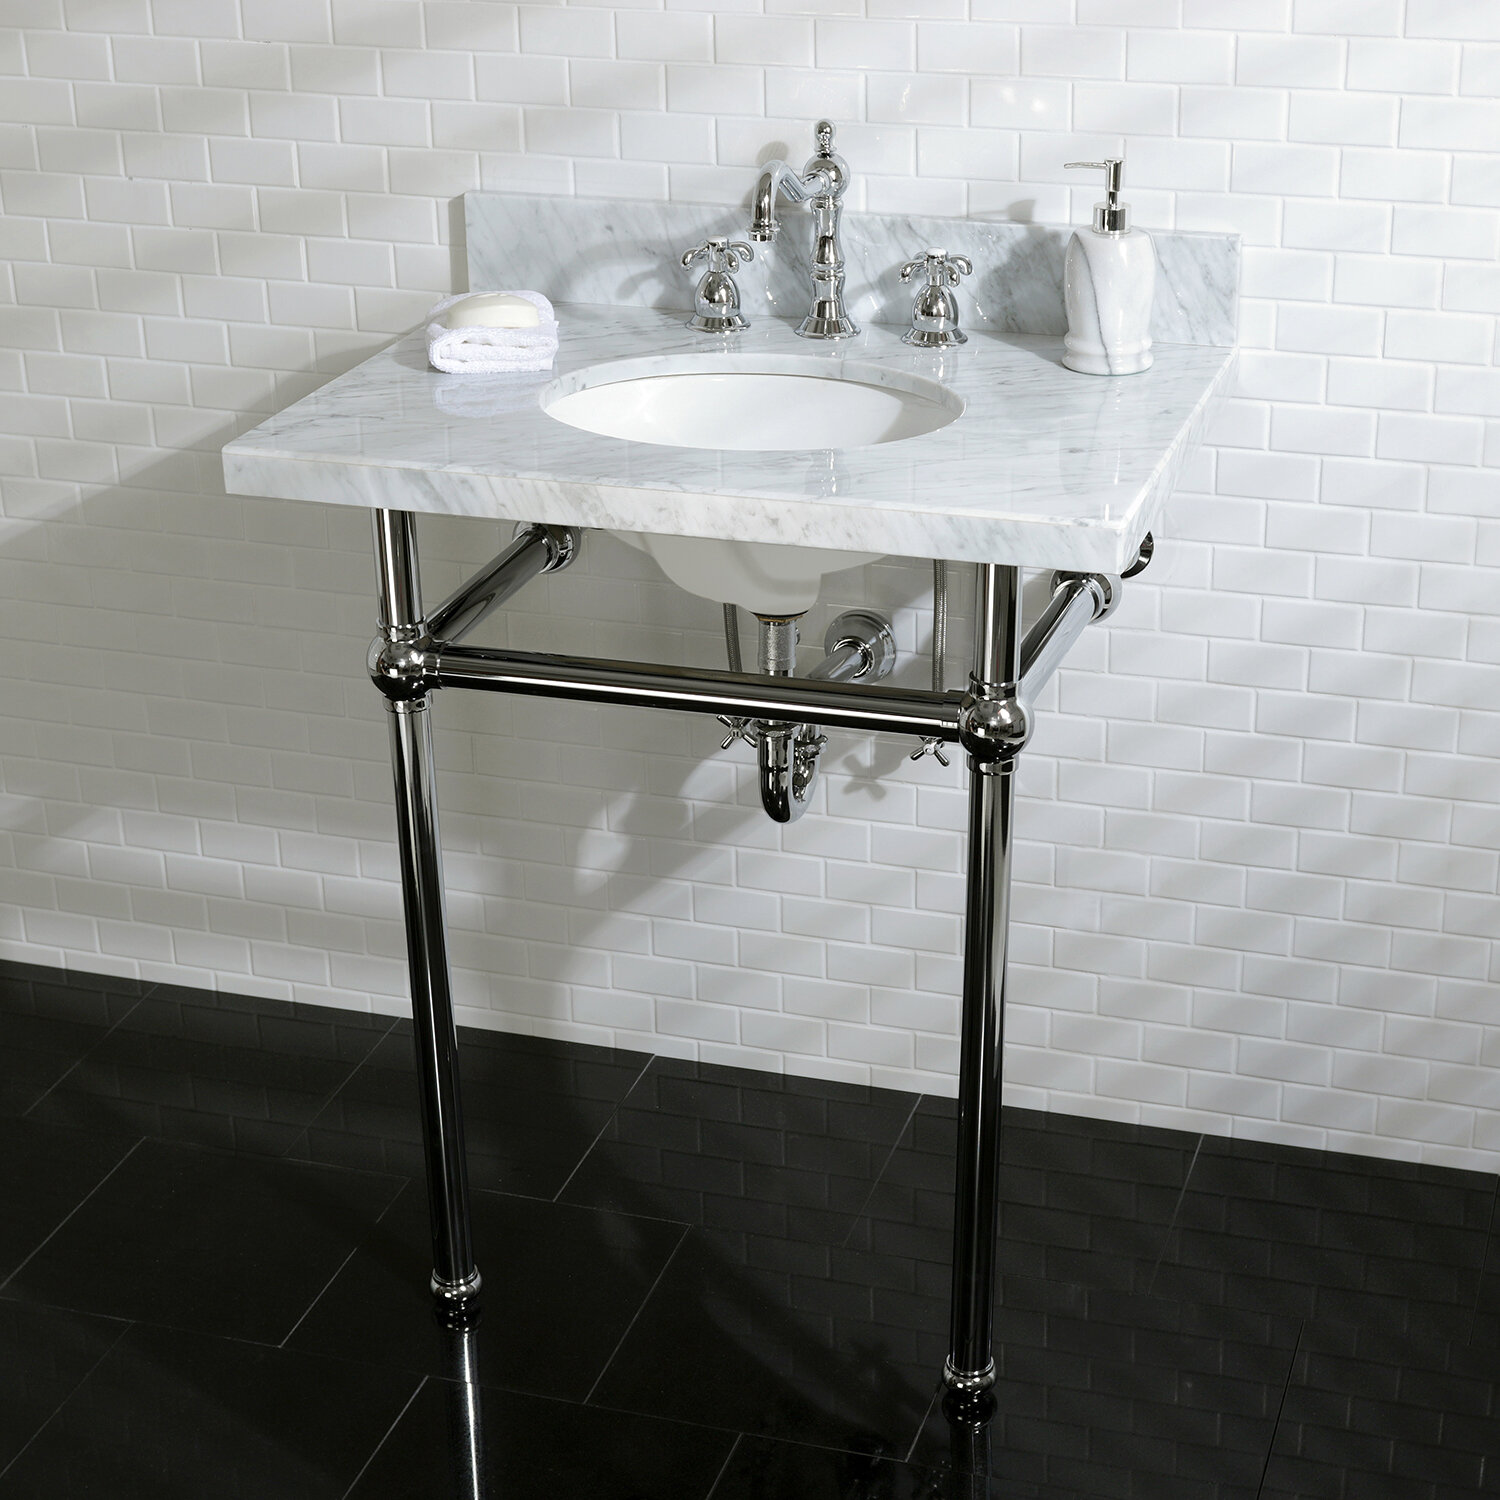 Kingston Brass Templeton 33 Tall Oval Console Bathroom Sink With Overflow Reviews Wayfair